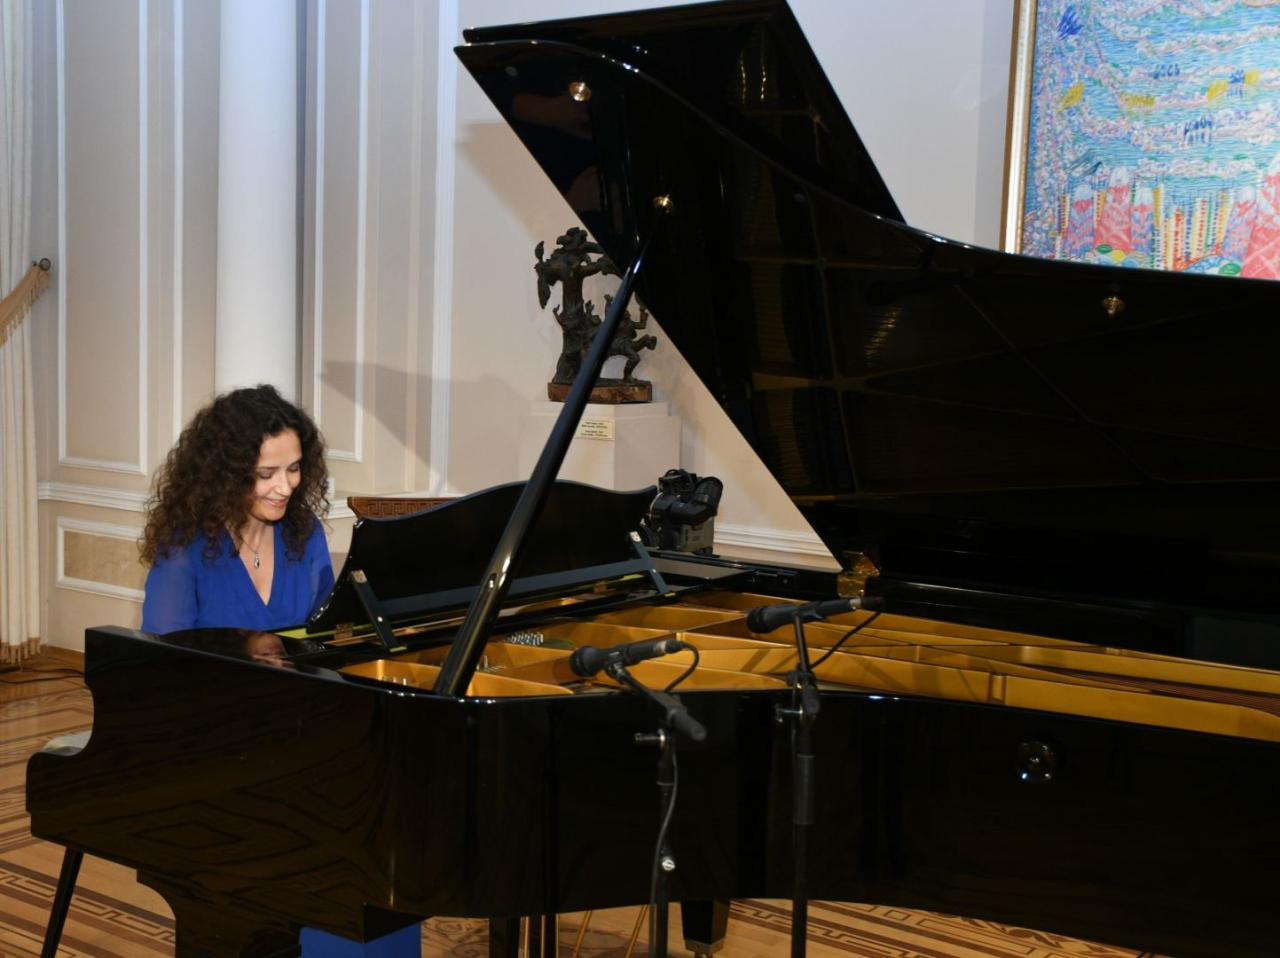 Classic music sounds at National Art Museum